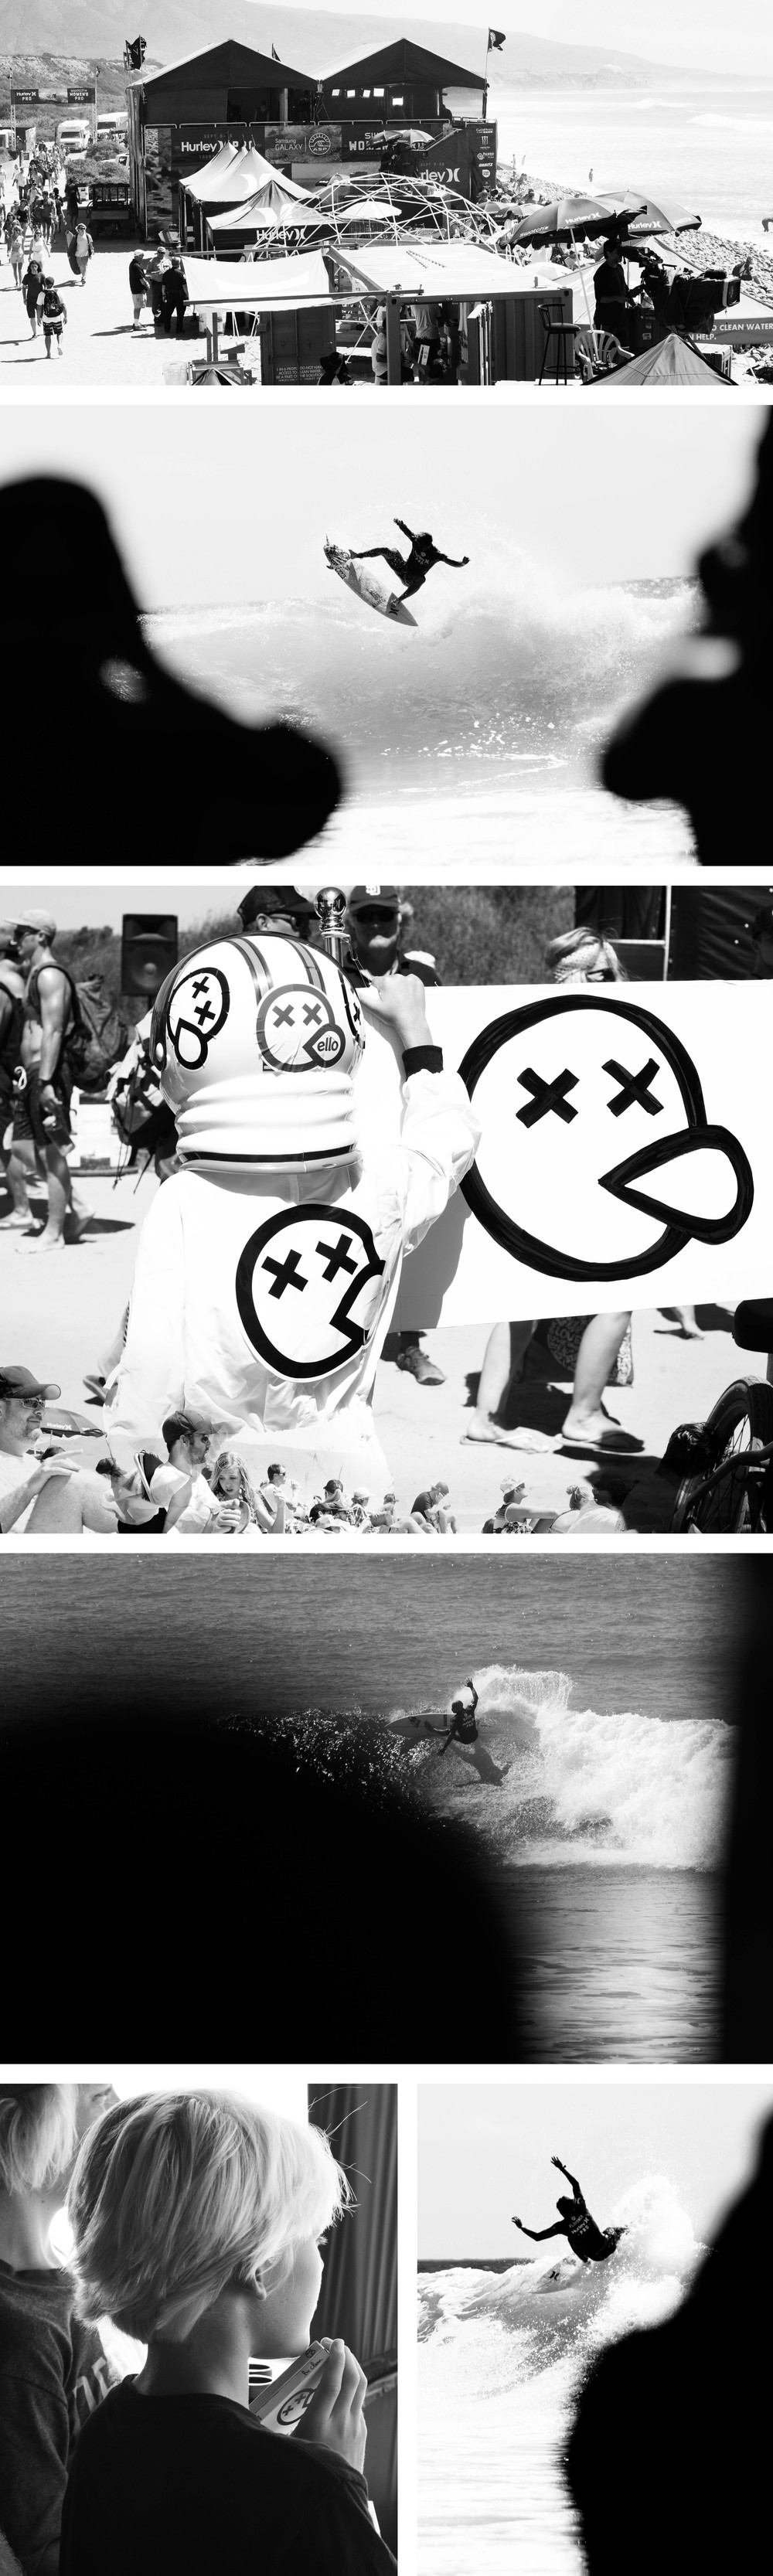 Hurley Lowers Pro 2014